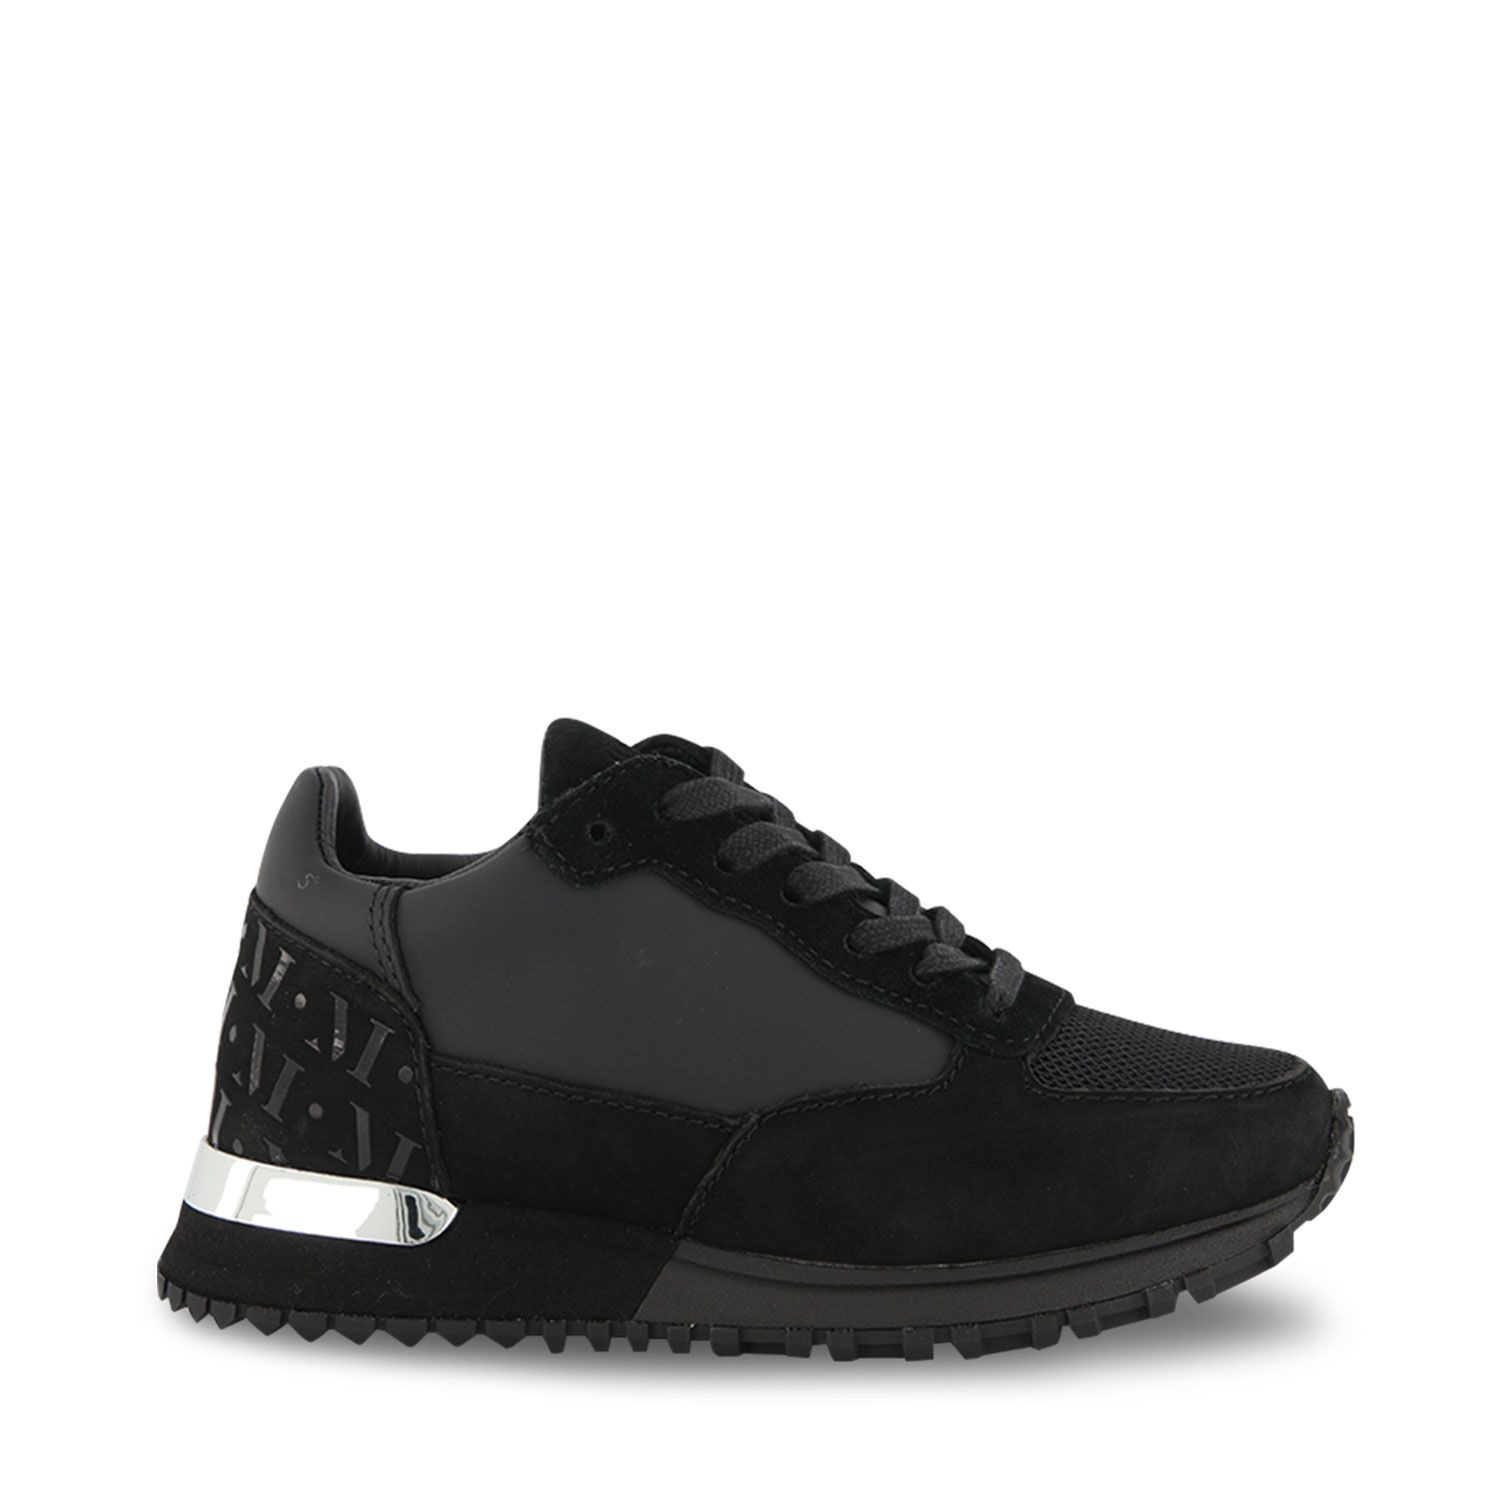 Picture of Mallet MK2050BLK kids sneakers black